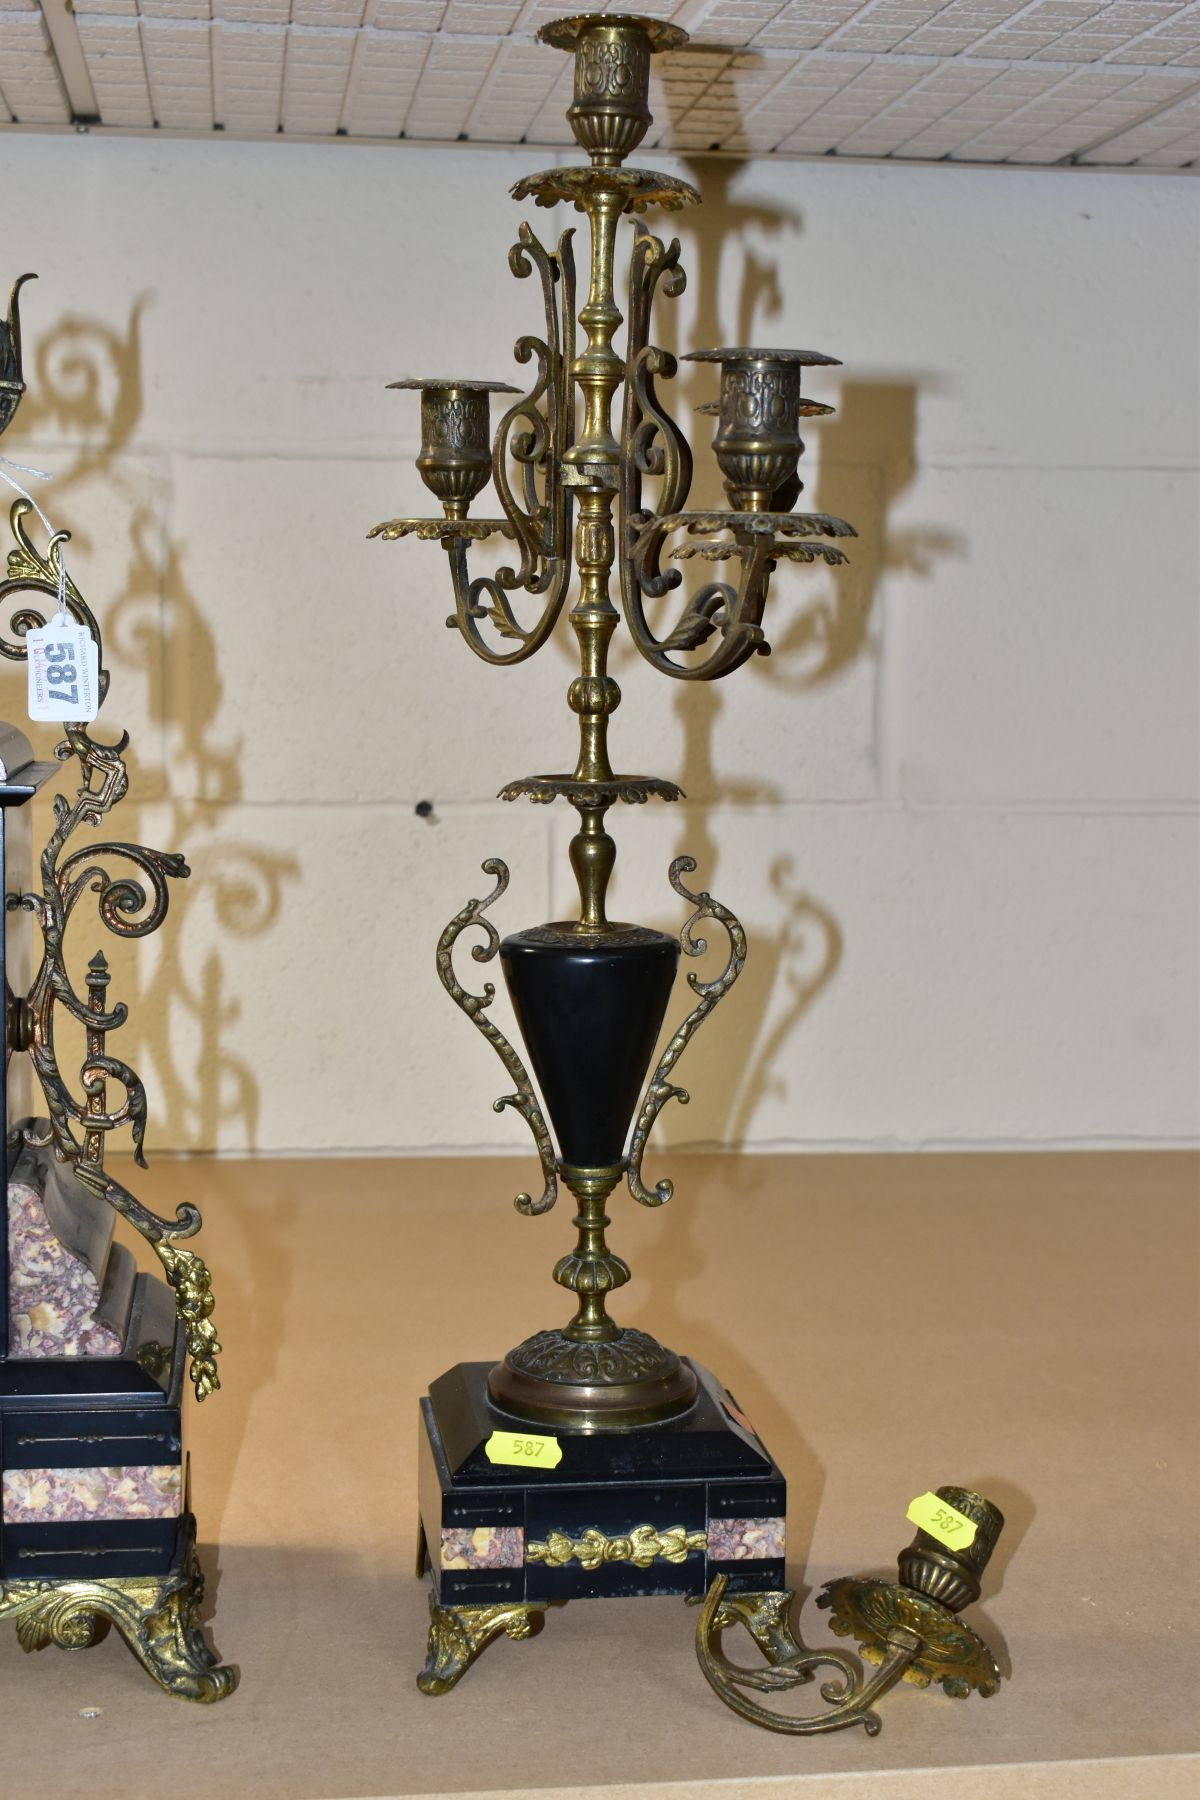 A LATE 19TH CENTURY BLACK SLATE, MARBLE AND GILT METAL CLOCK GARNITURE, the clock with urn shaped - Image 2 of 13